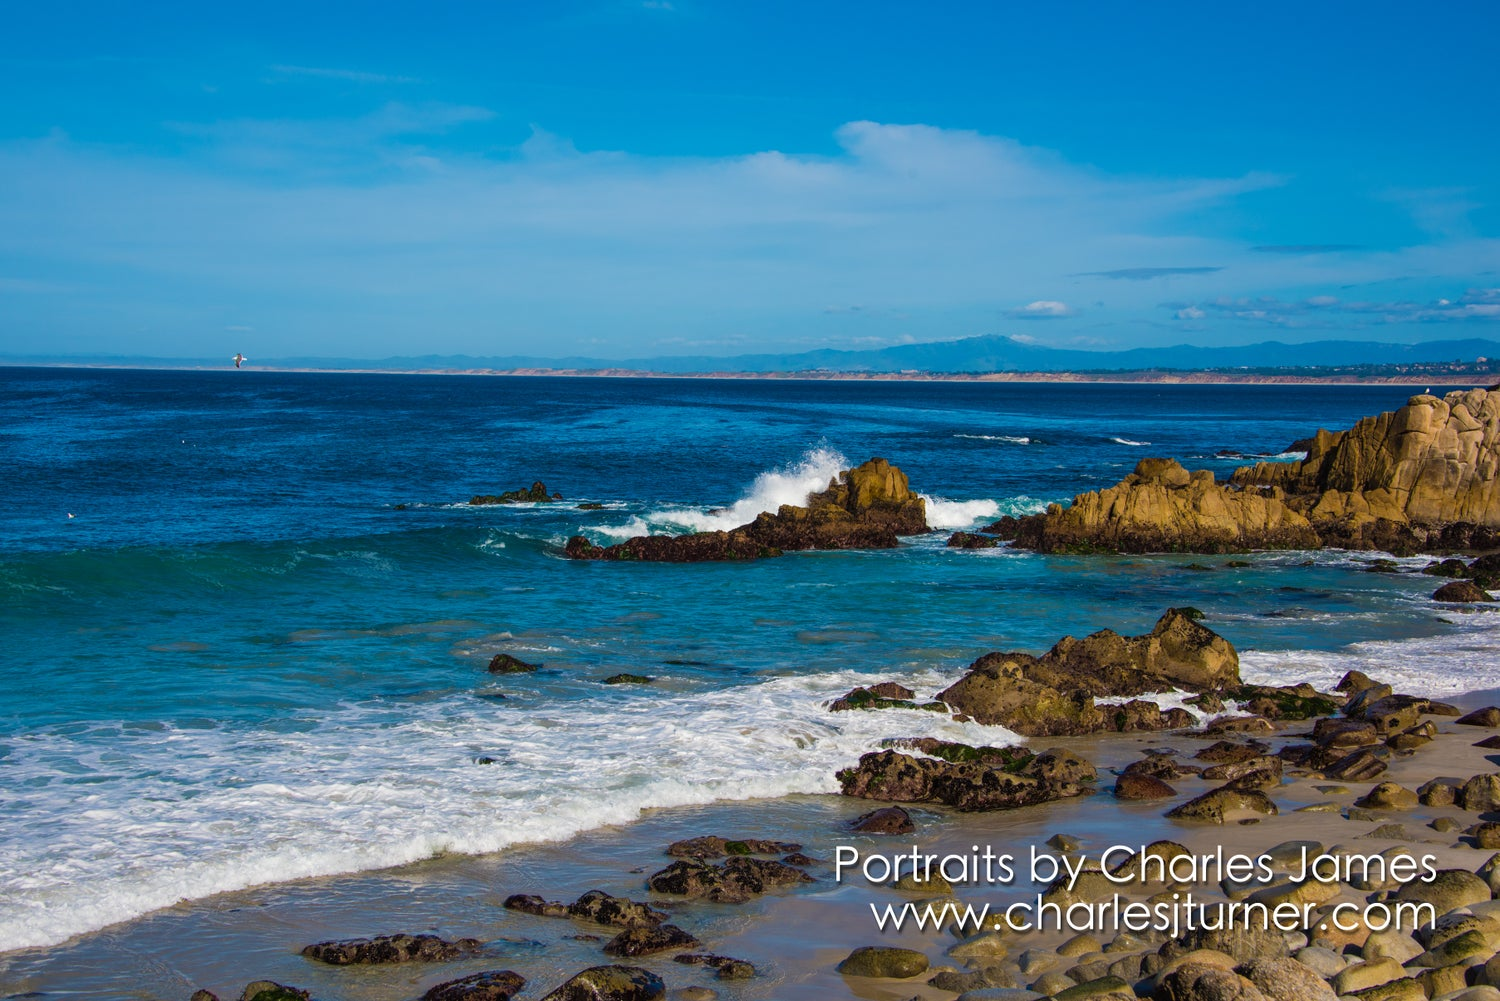 Image of Monterey Bay